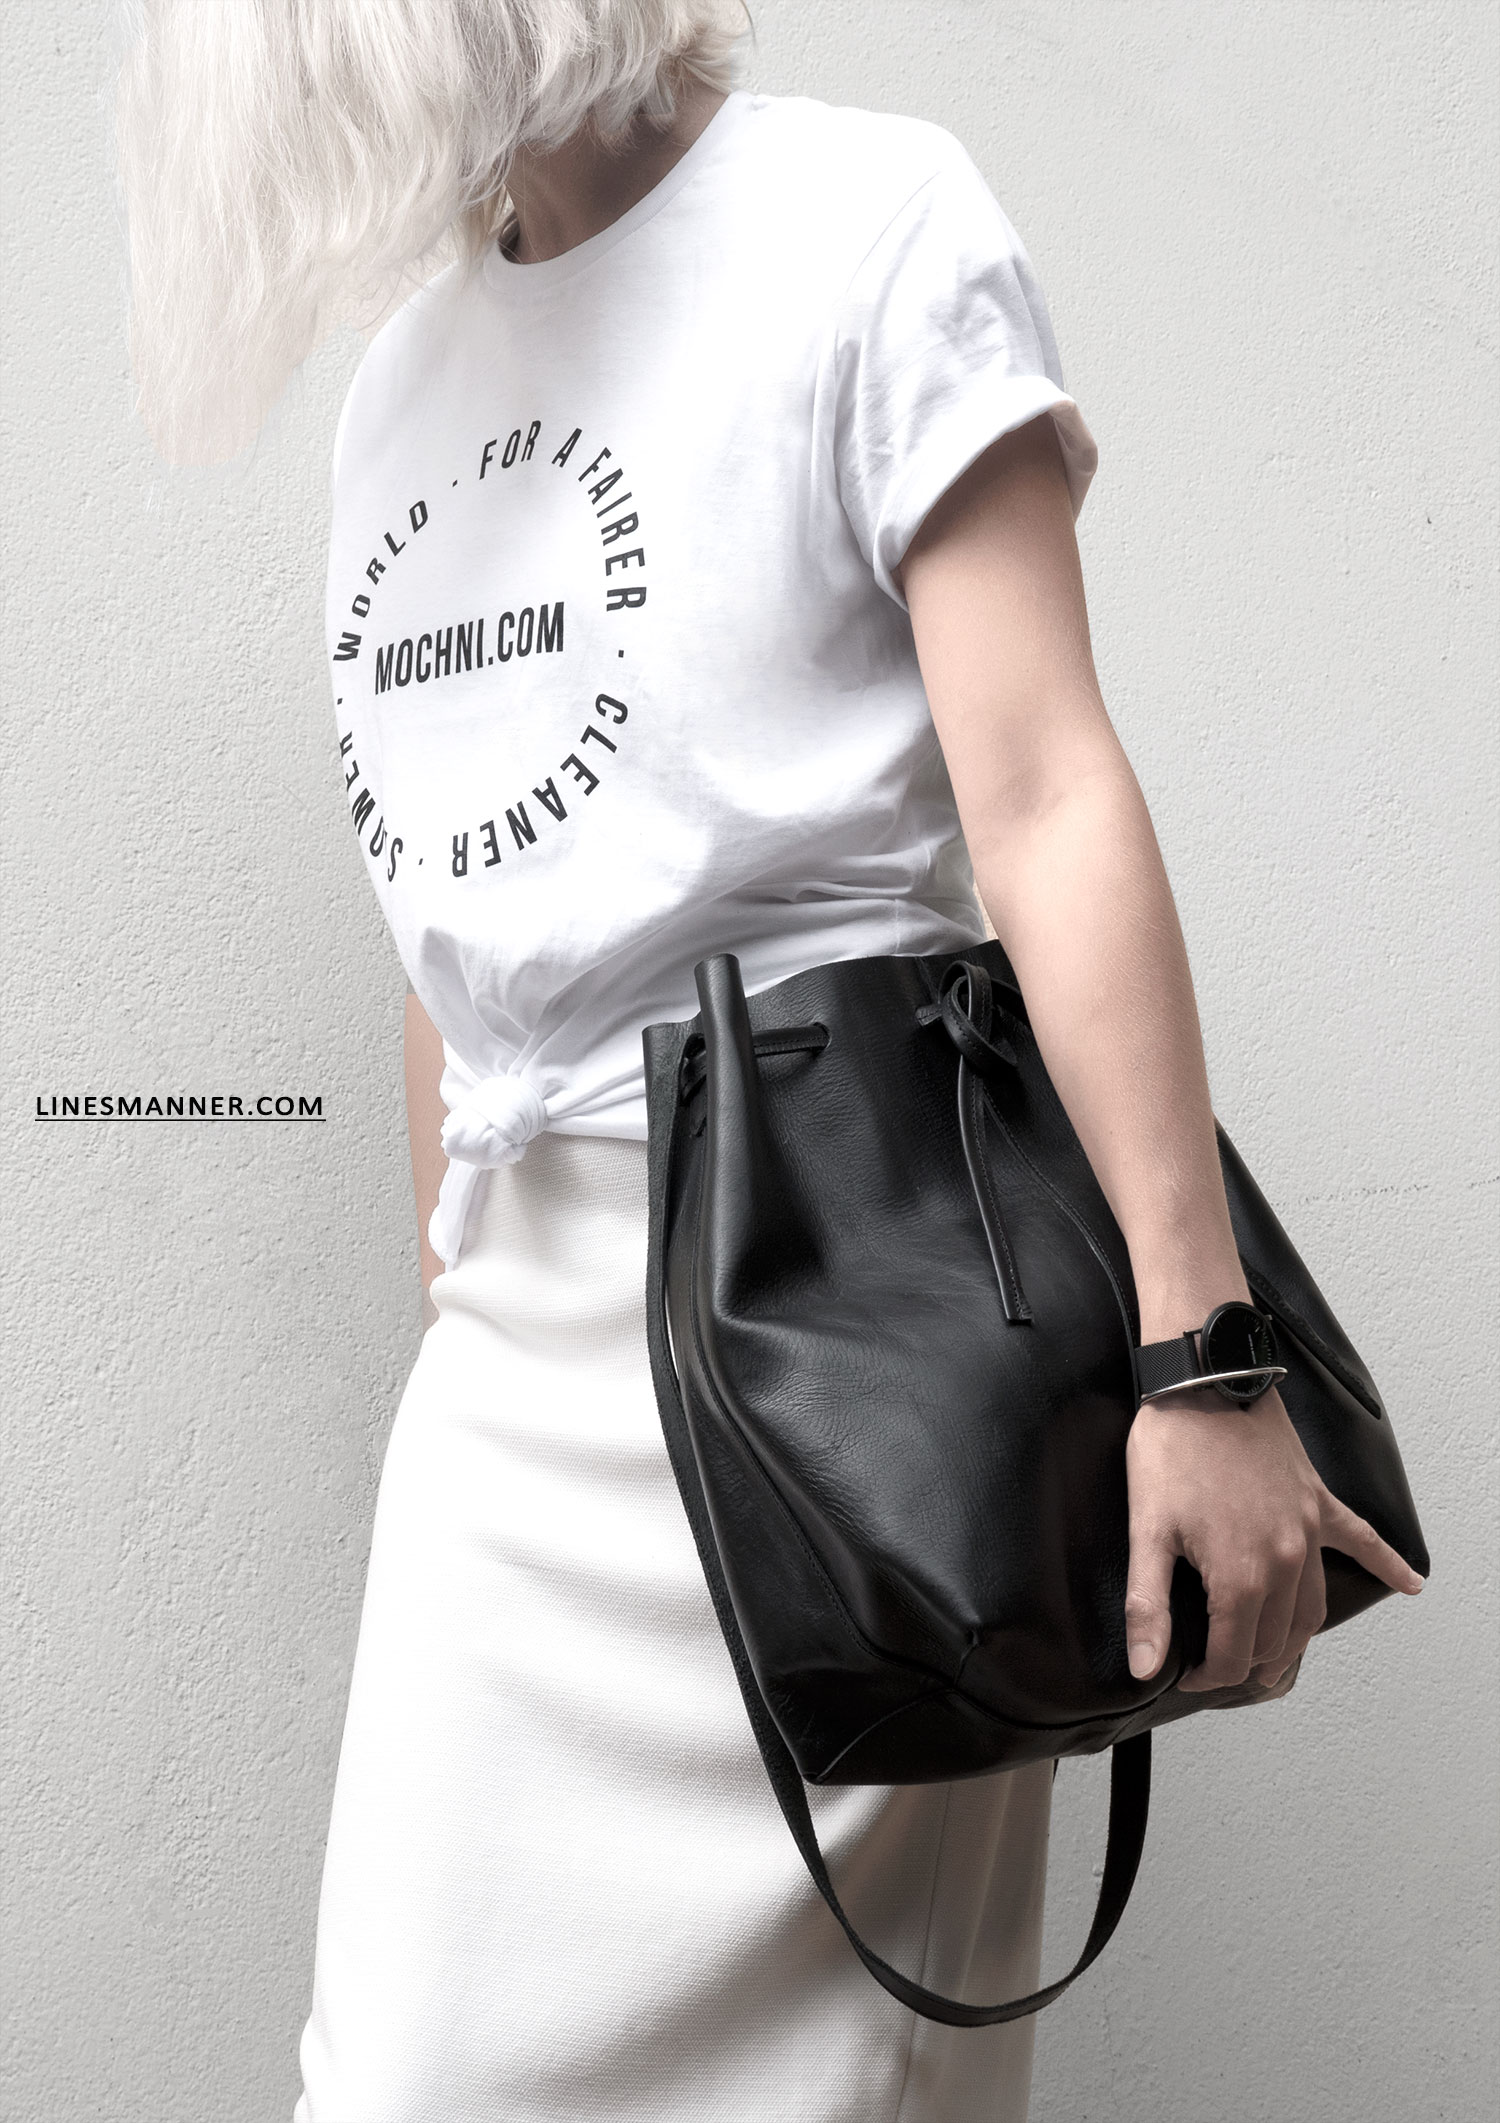 Lines-Manner-Mochni-Slow_Fashion_Plateform-Sustainable-Eco_Fashion-Awareness-Tee-Fairer-World-Conscious-Essentials-Minimal-Monochrome-Quality-Organic-6